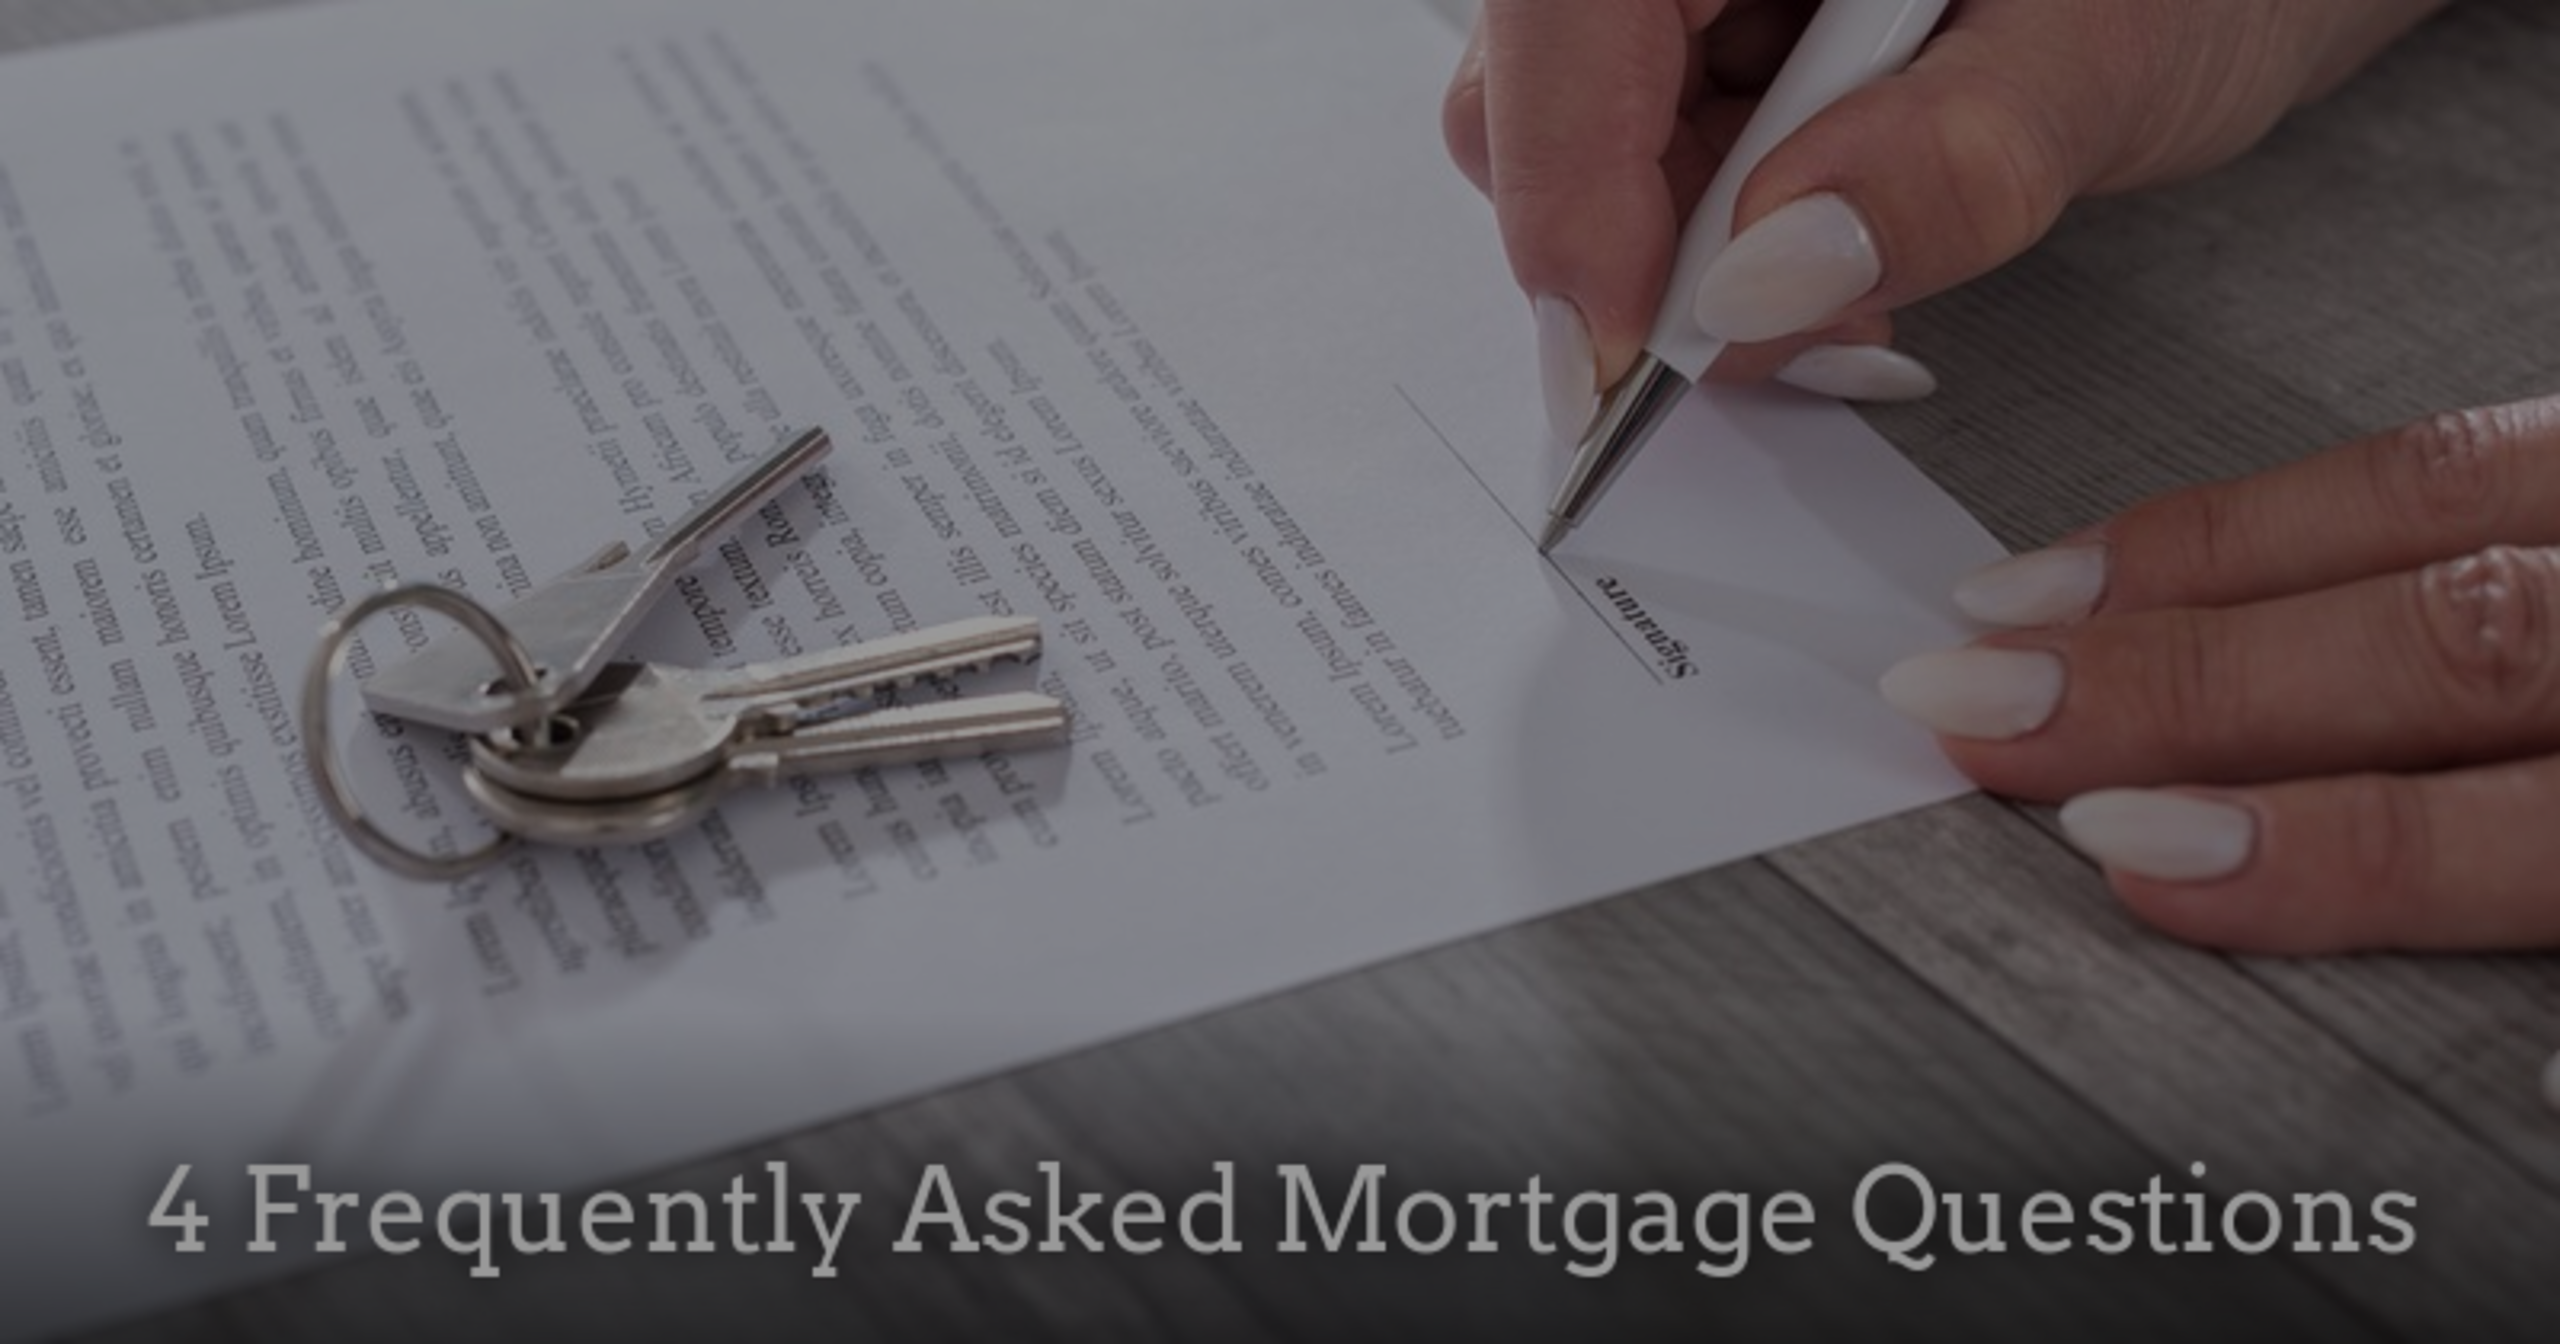 4 Frequently Asked Mortgage Questions